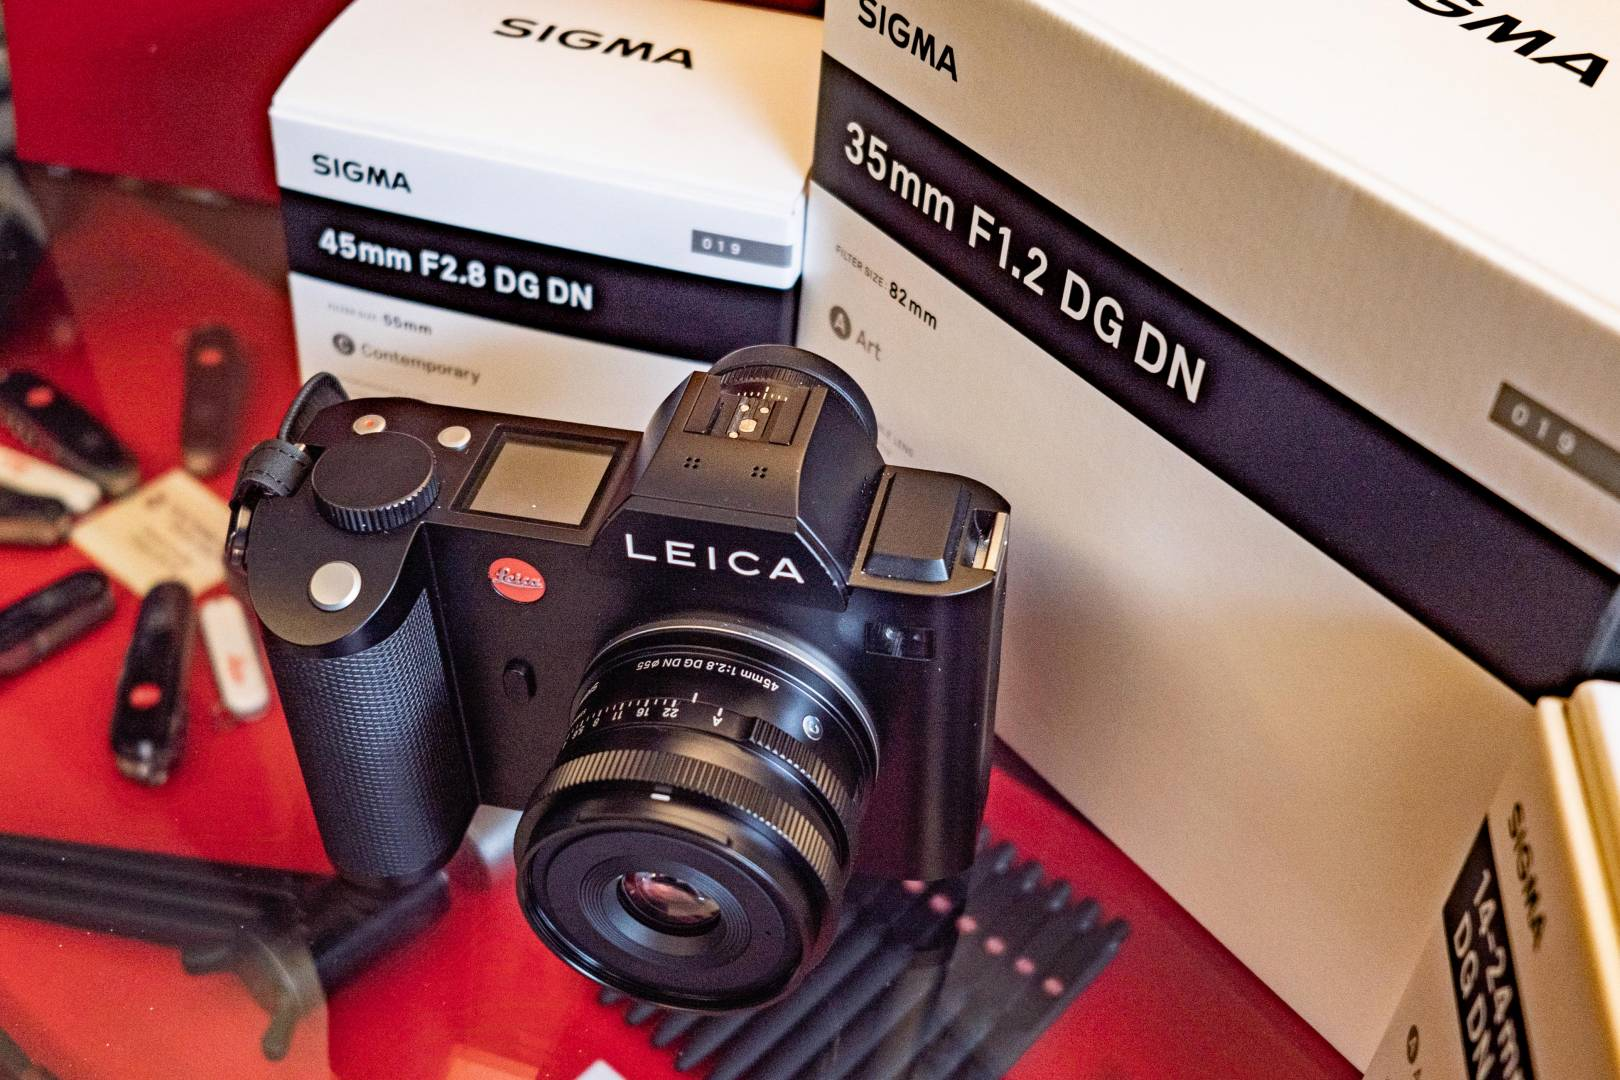 This is the first really compact full-frame prime for use with the Leica SL. It's light and makes handling a pleasure.